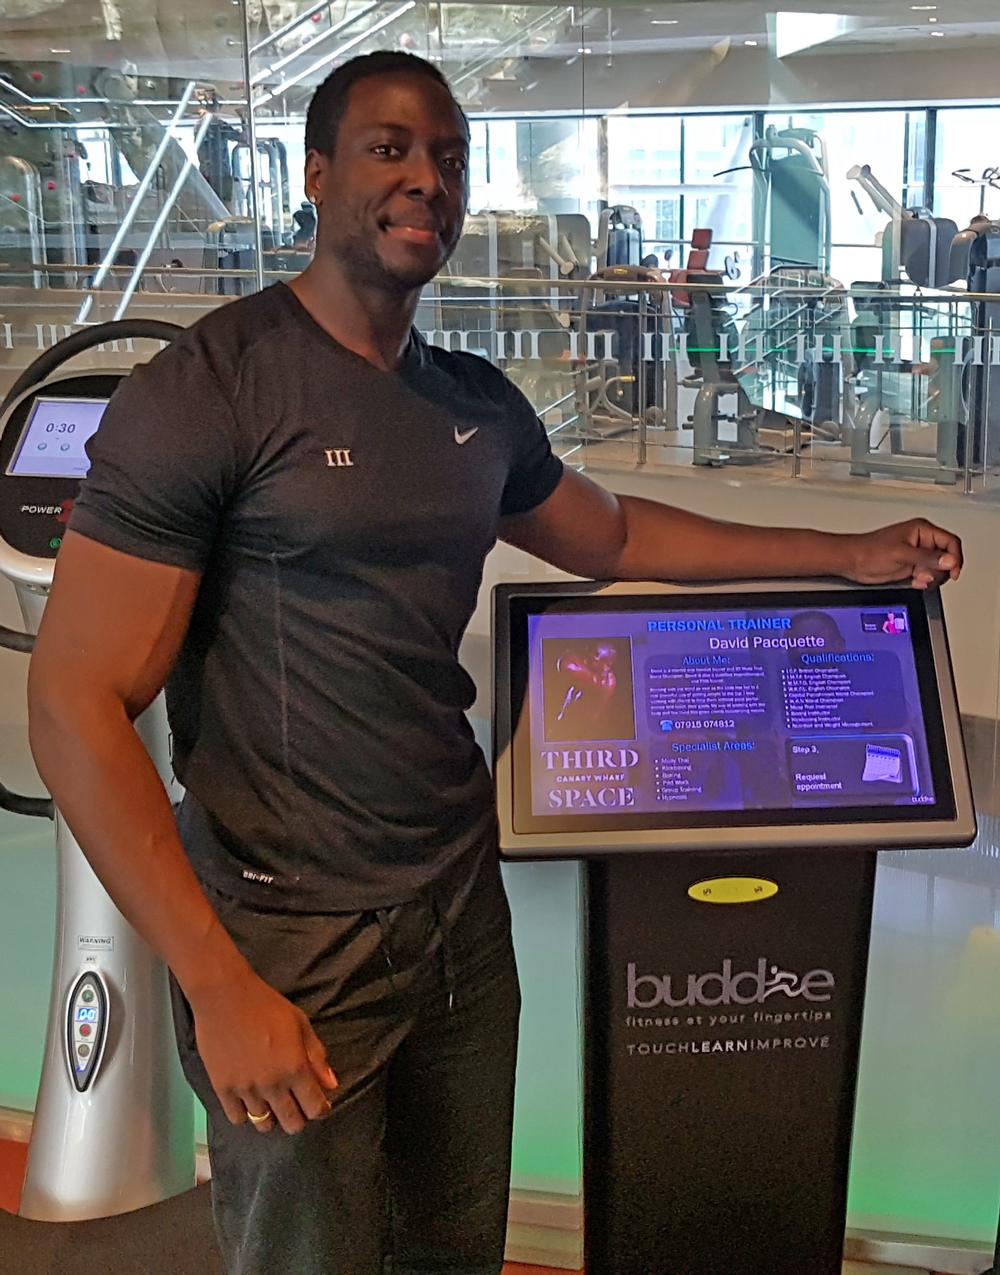 PT's benefit from gym budd-e as it's helped them connect with members